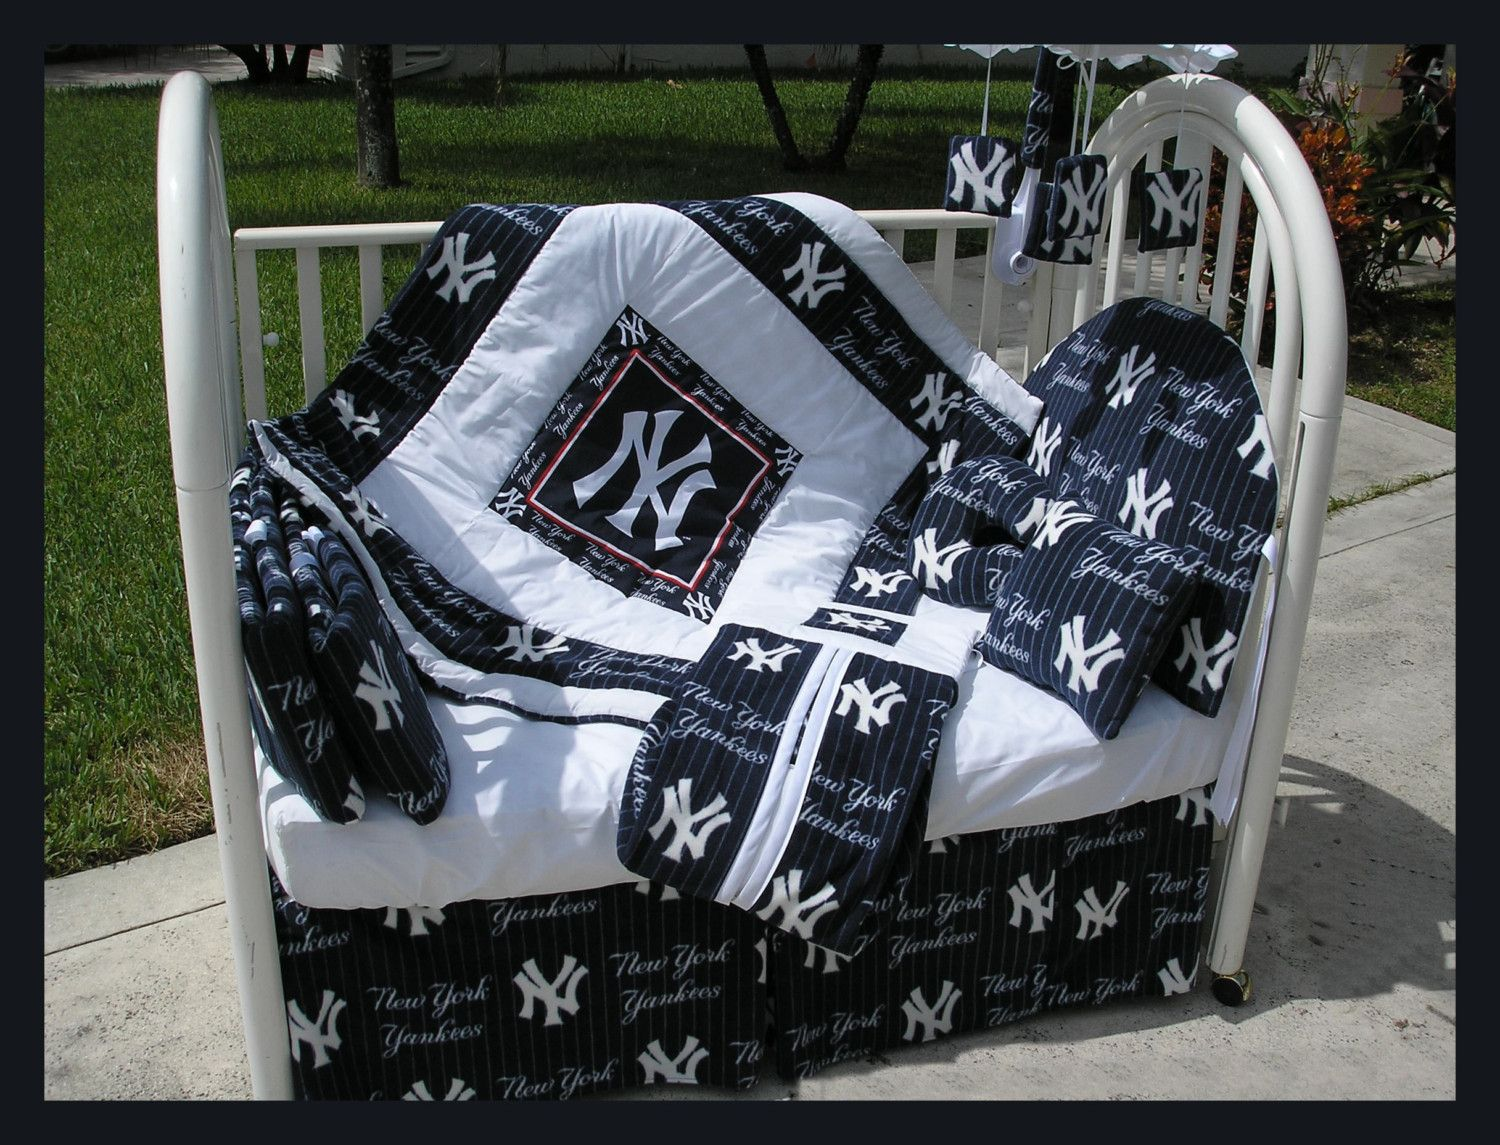 NEW baby crib bedding set in NEW YORK NY YANKEES fabric Yankees